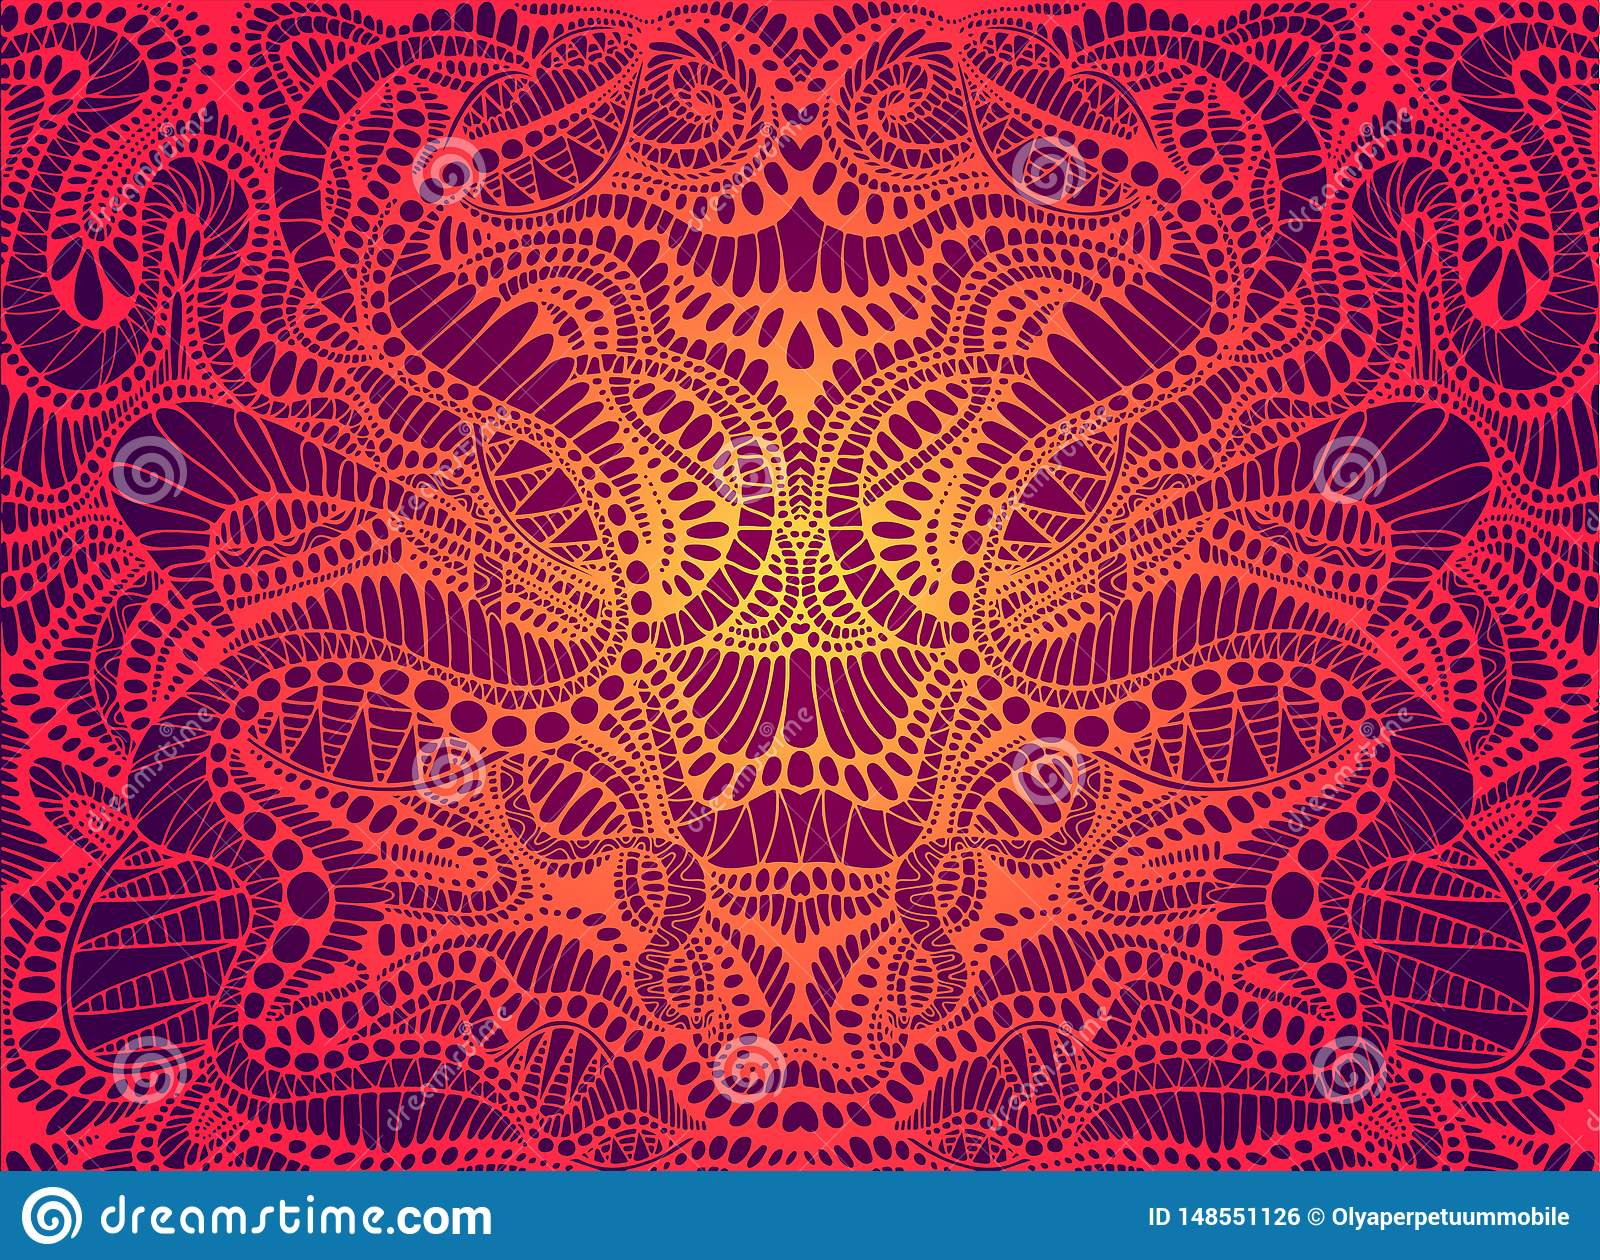 Psychedelic Trippy Colorful Fractal Mandala Gradient Bright Red